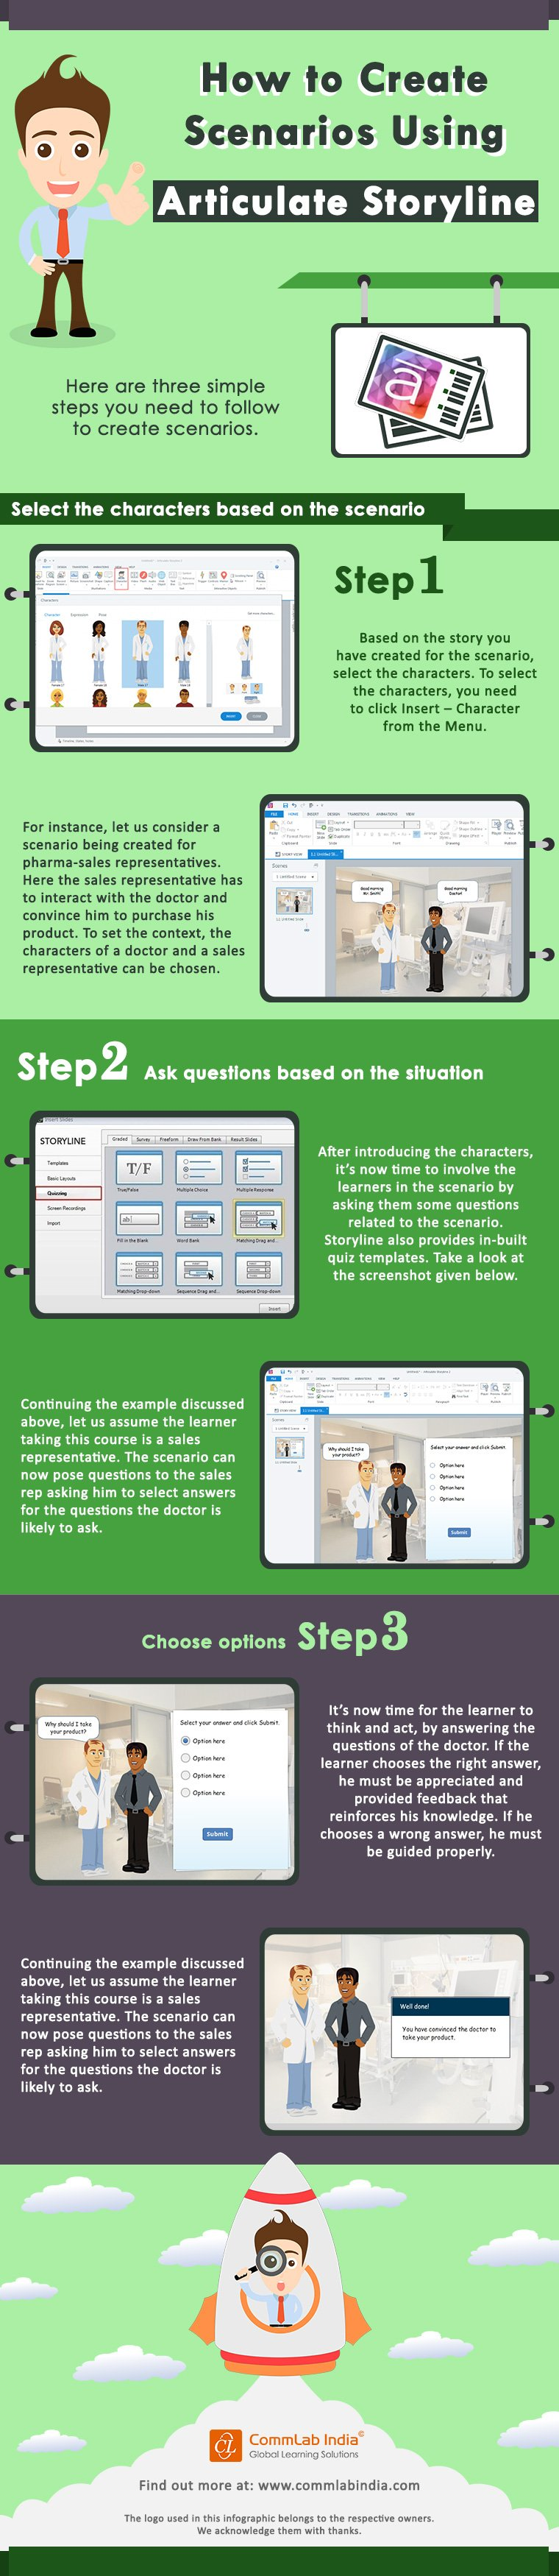 3 Easy Steps to Create Scenarios Using Articulate Storyline [Infographic]